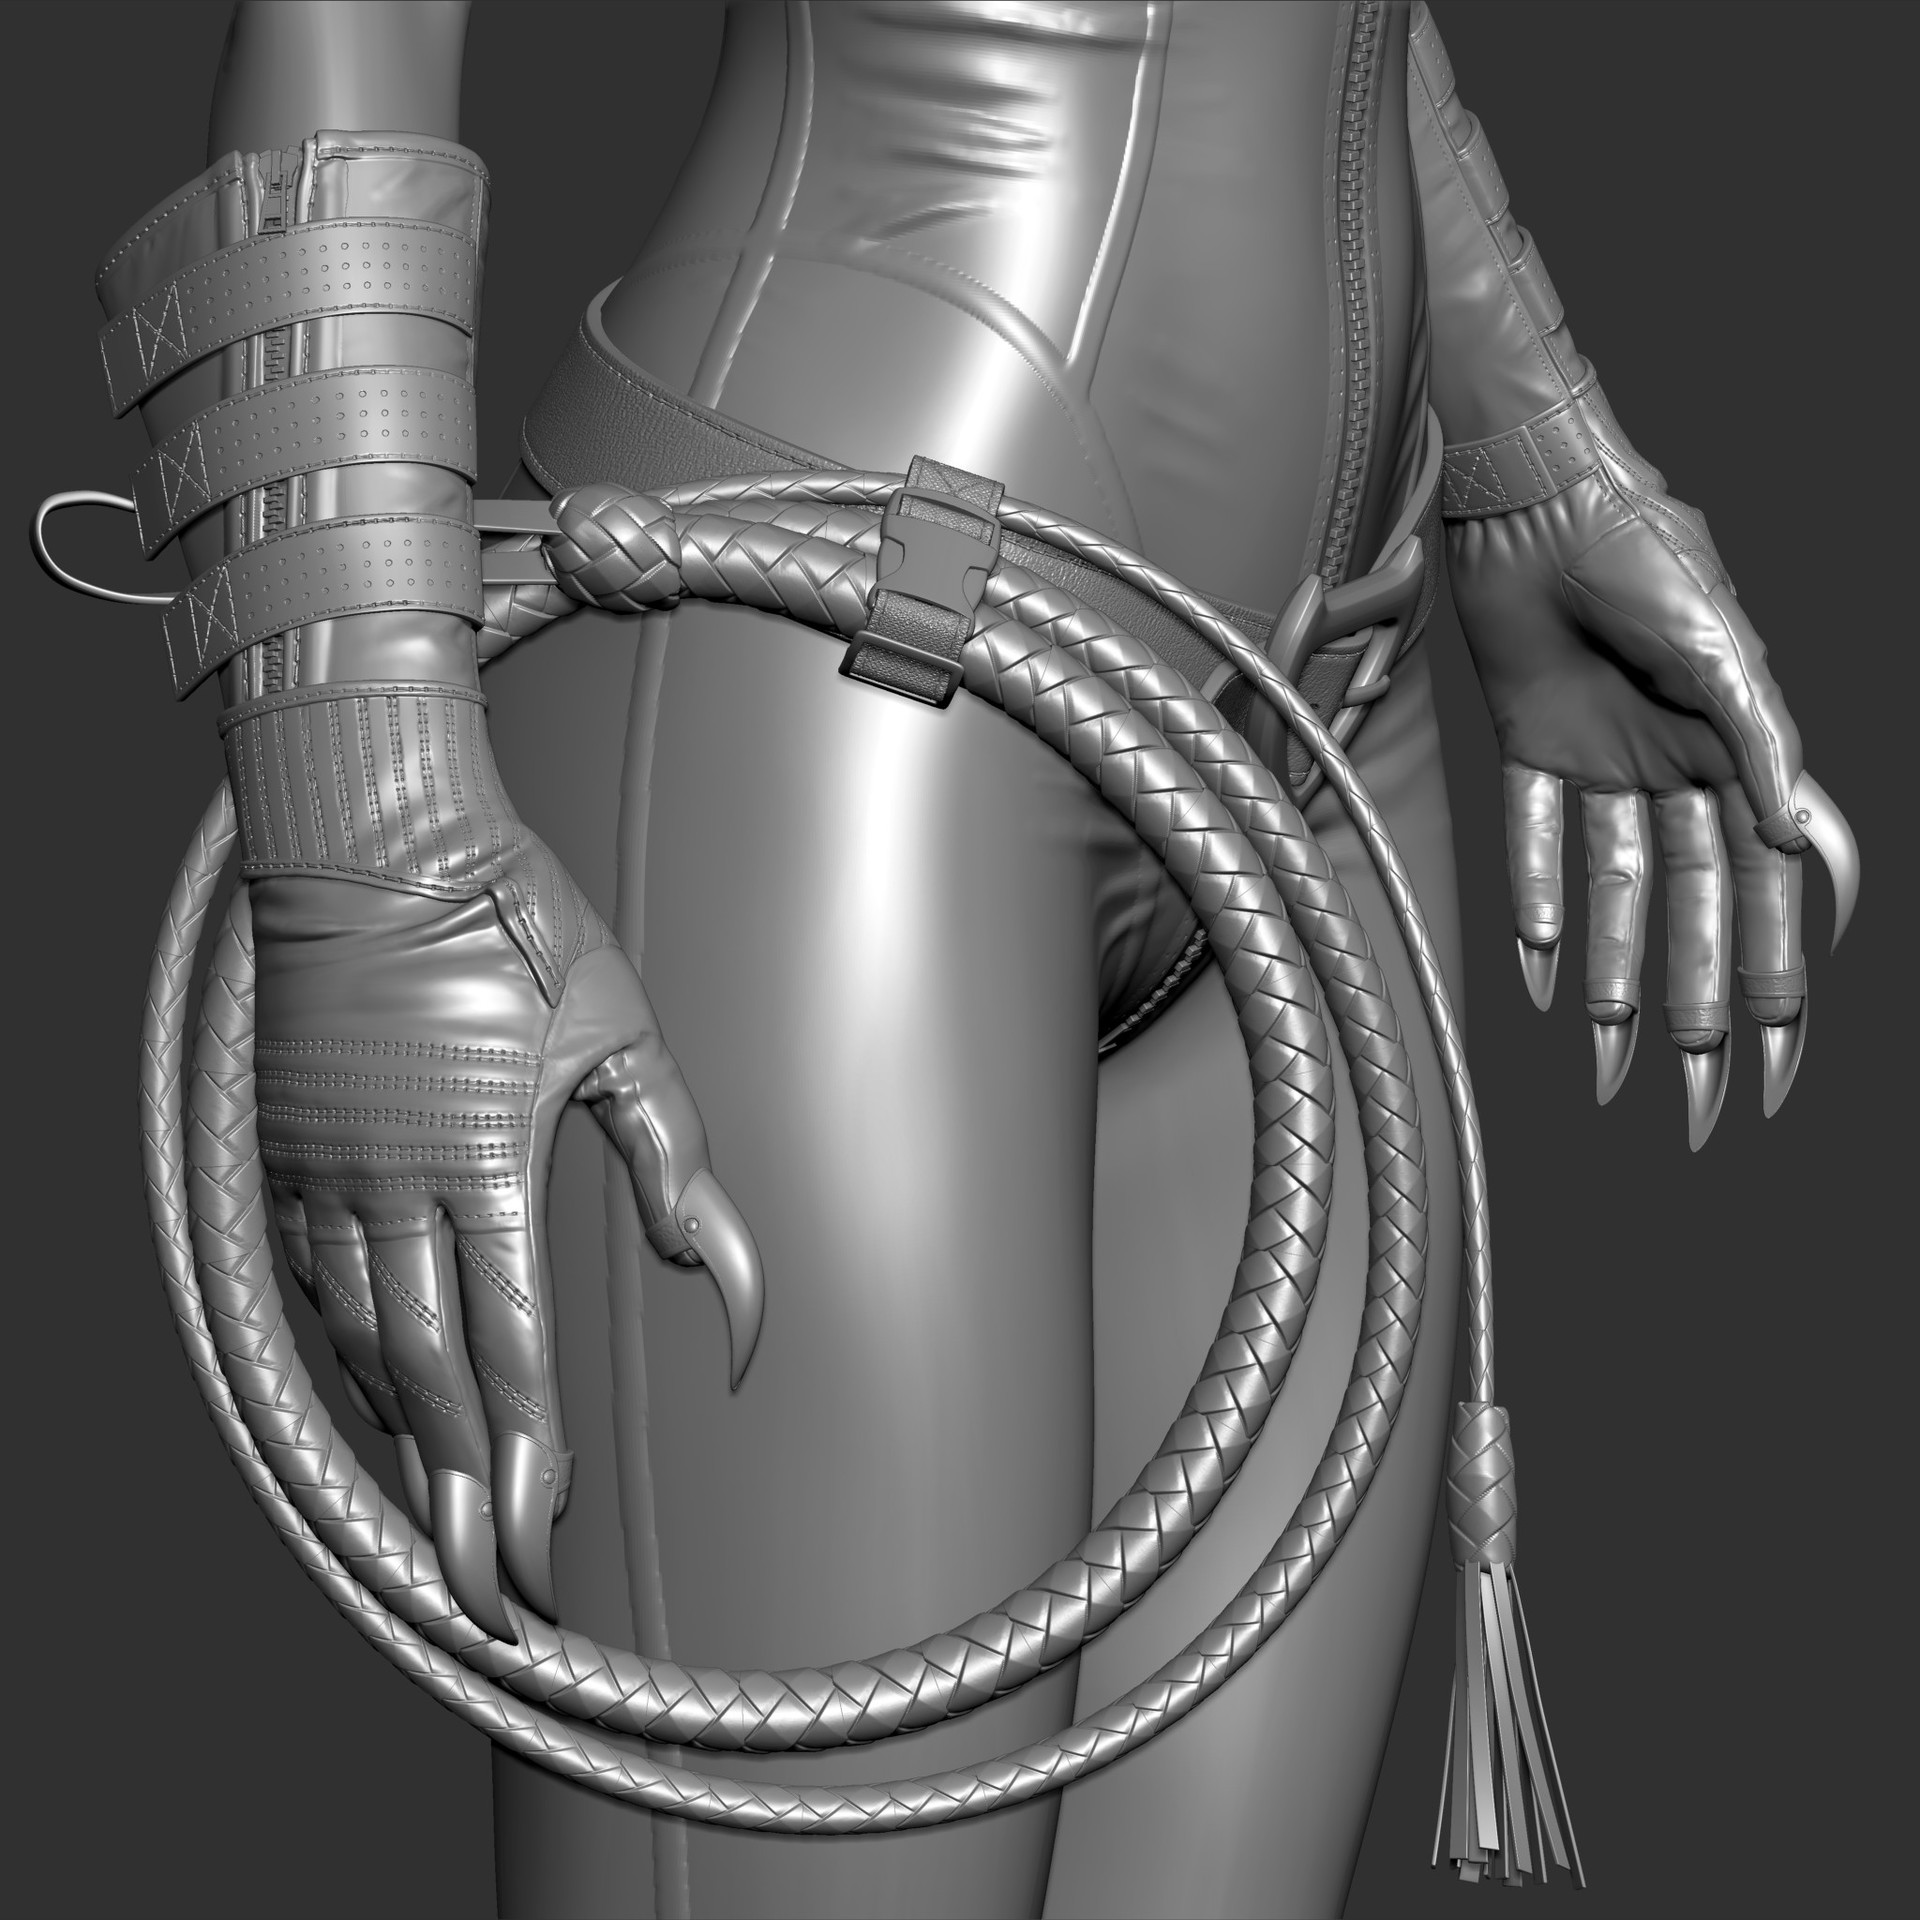 Zoltan korcsok clayr 007 zbrush document